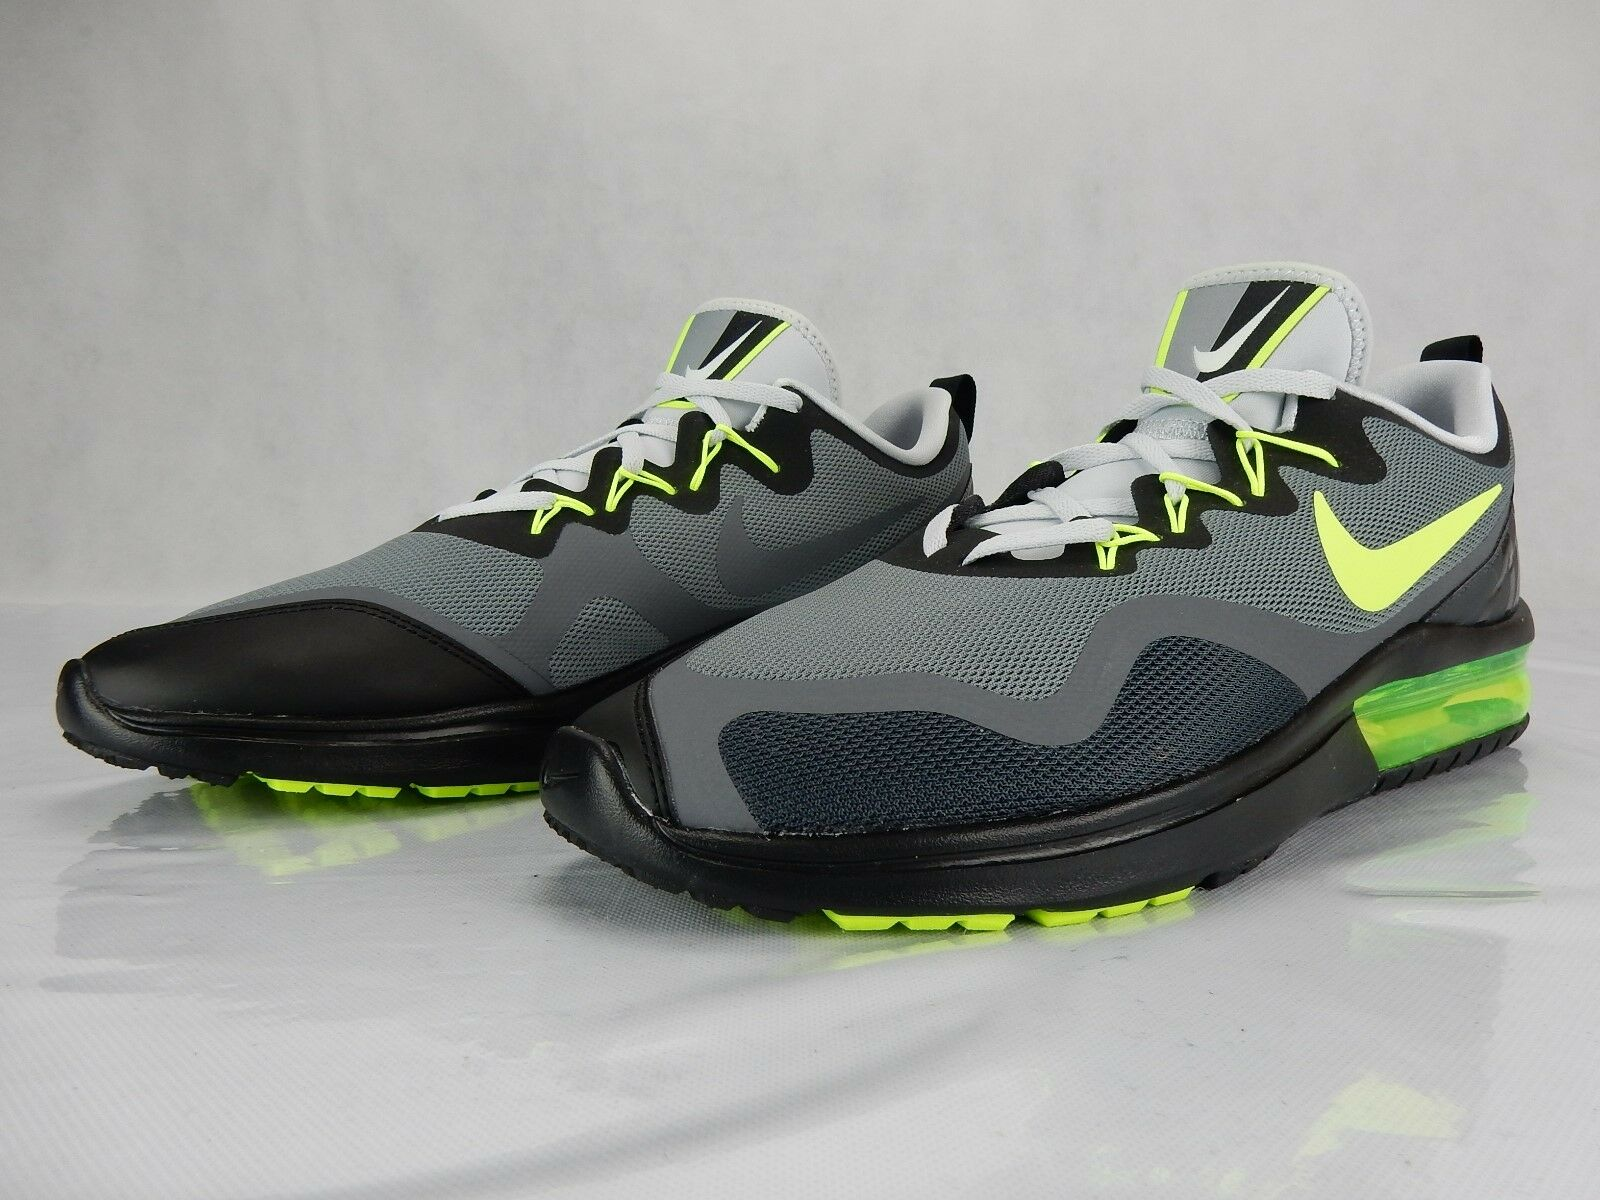 Nike Air Max Fury Grey Volt Anthracite AA5739 007 Mens shoes S Size 13 Sneakers